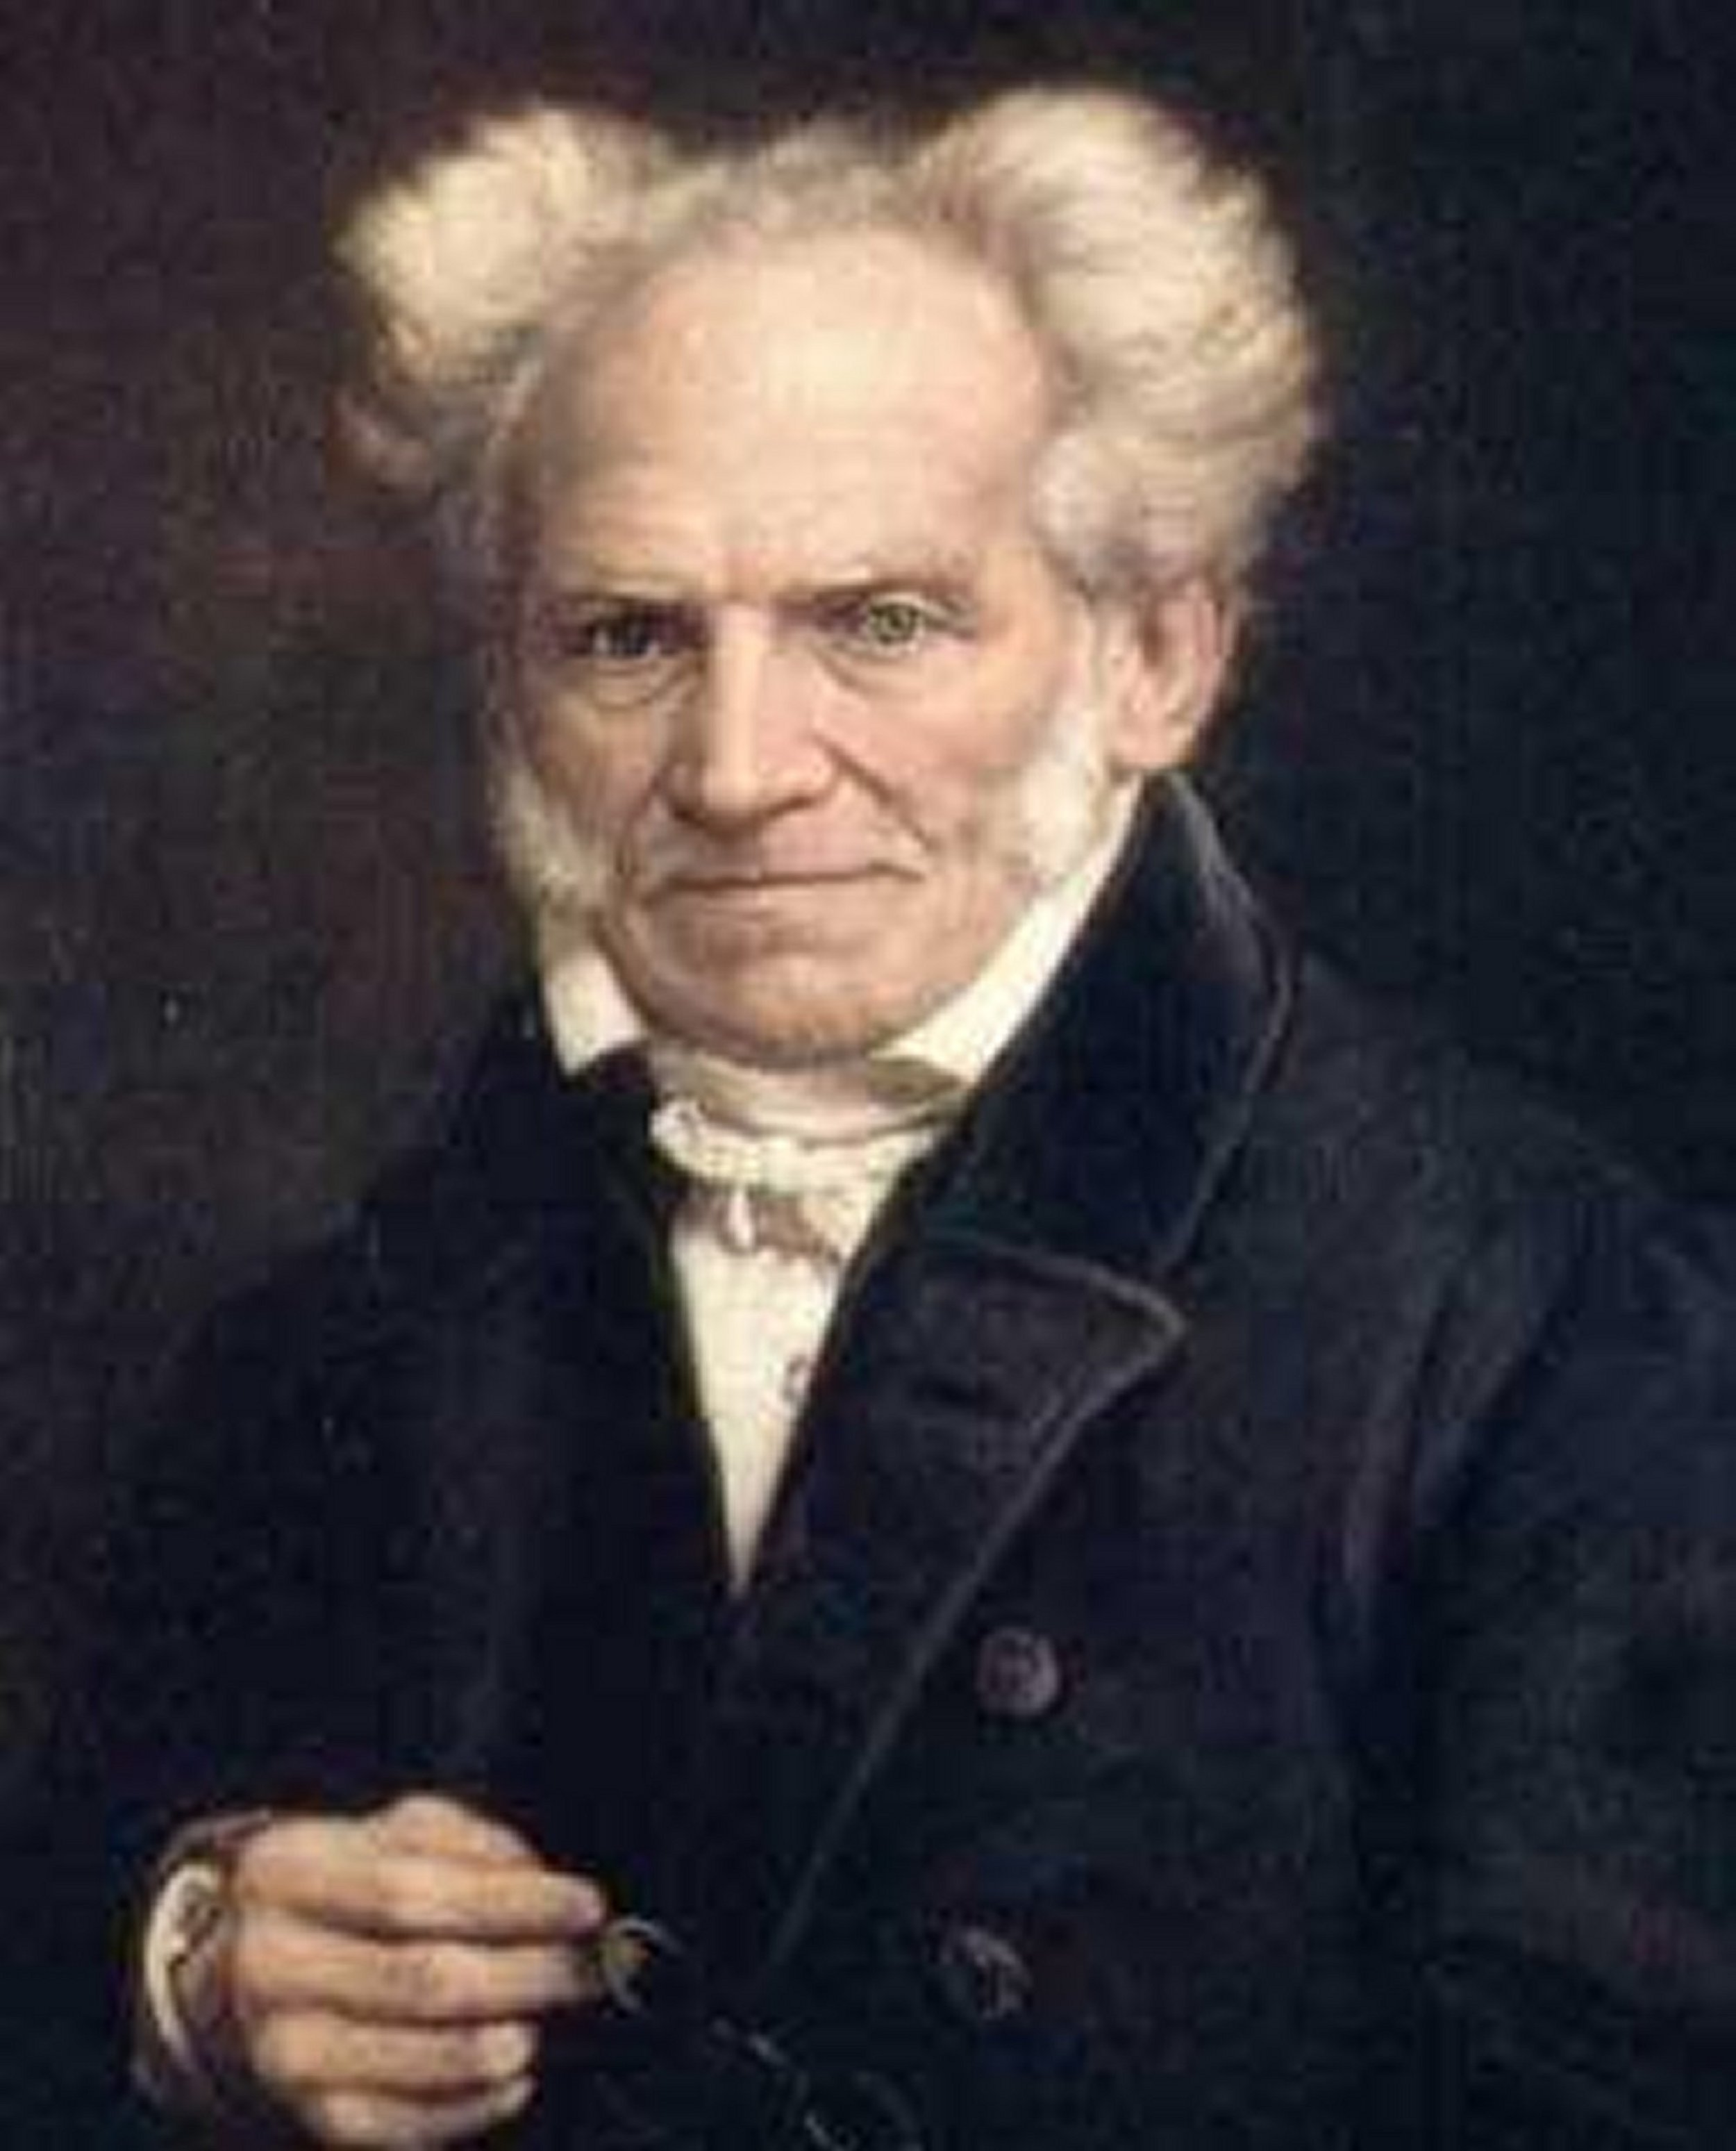 the will and science according to schopenhauer Schopenhauer, arthur, 1788–1860 [preisschrift u¨ber die freiheit des willens english] prize essay on the freedom of the will / arthur schopenhauer: edited by gu¨nter zo¨ller translated by eric f j payne p cm – (cambridge texts in the history of philosophy) includes index isbn 0 521 57141 3 (hardback) – isbn 0 521 57766 7 (paperback) 1.